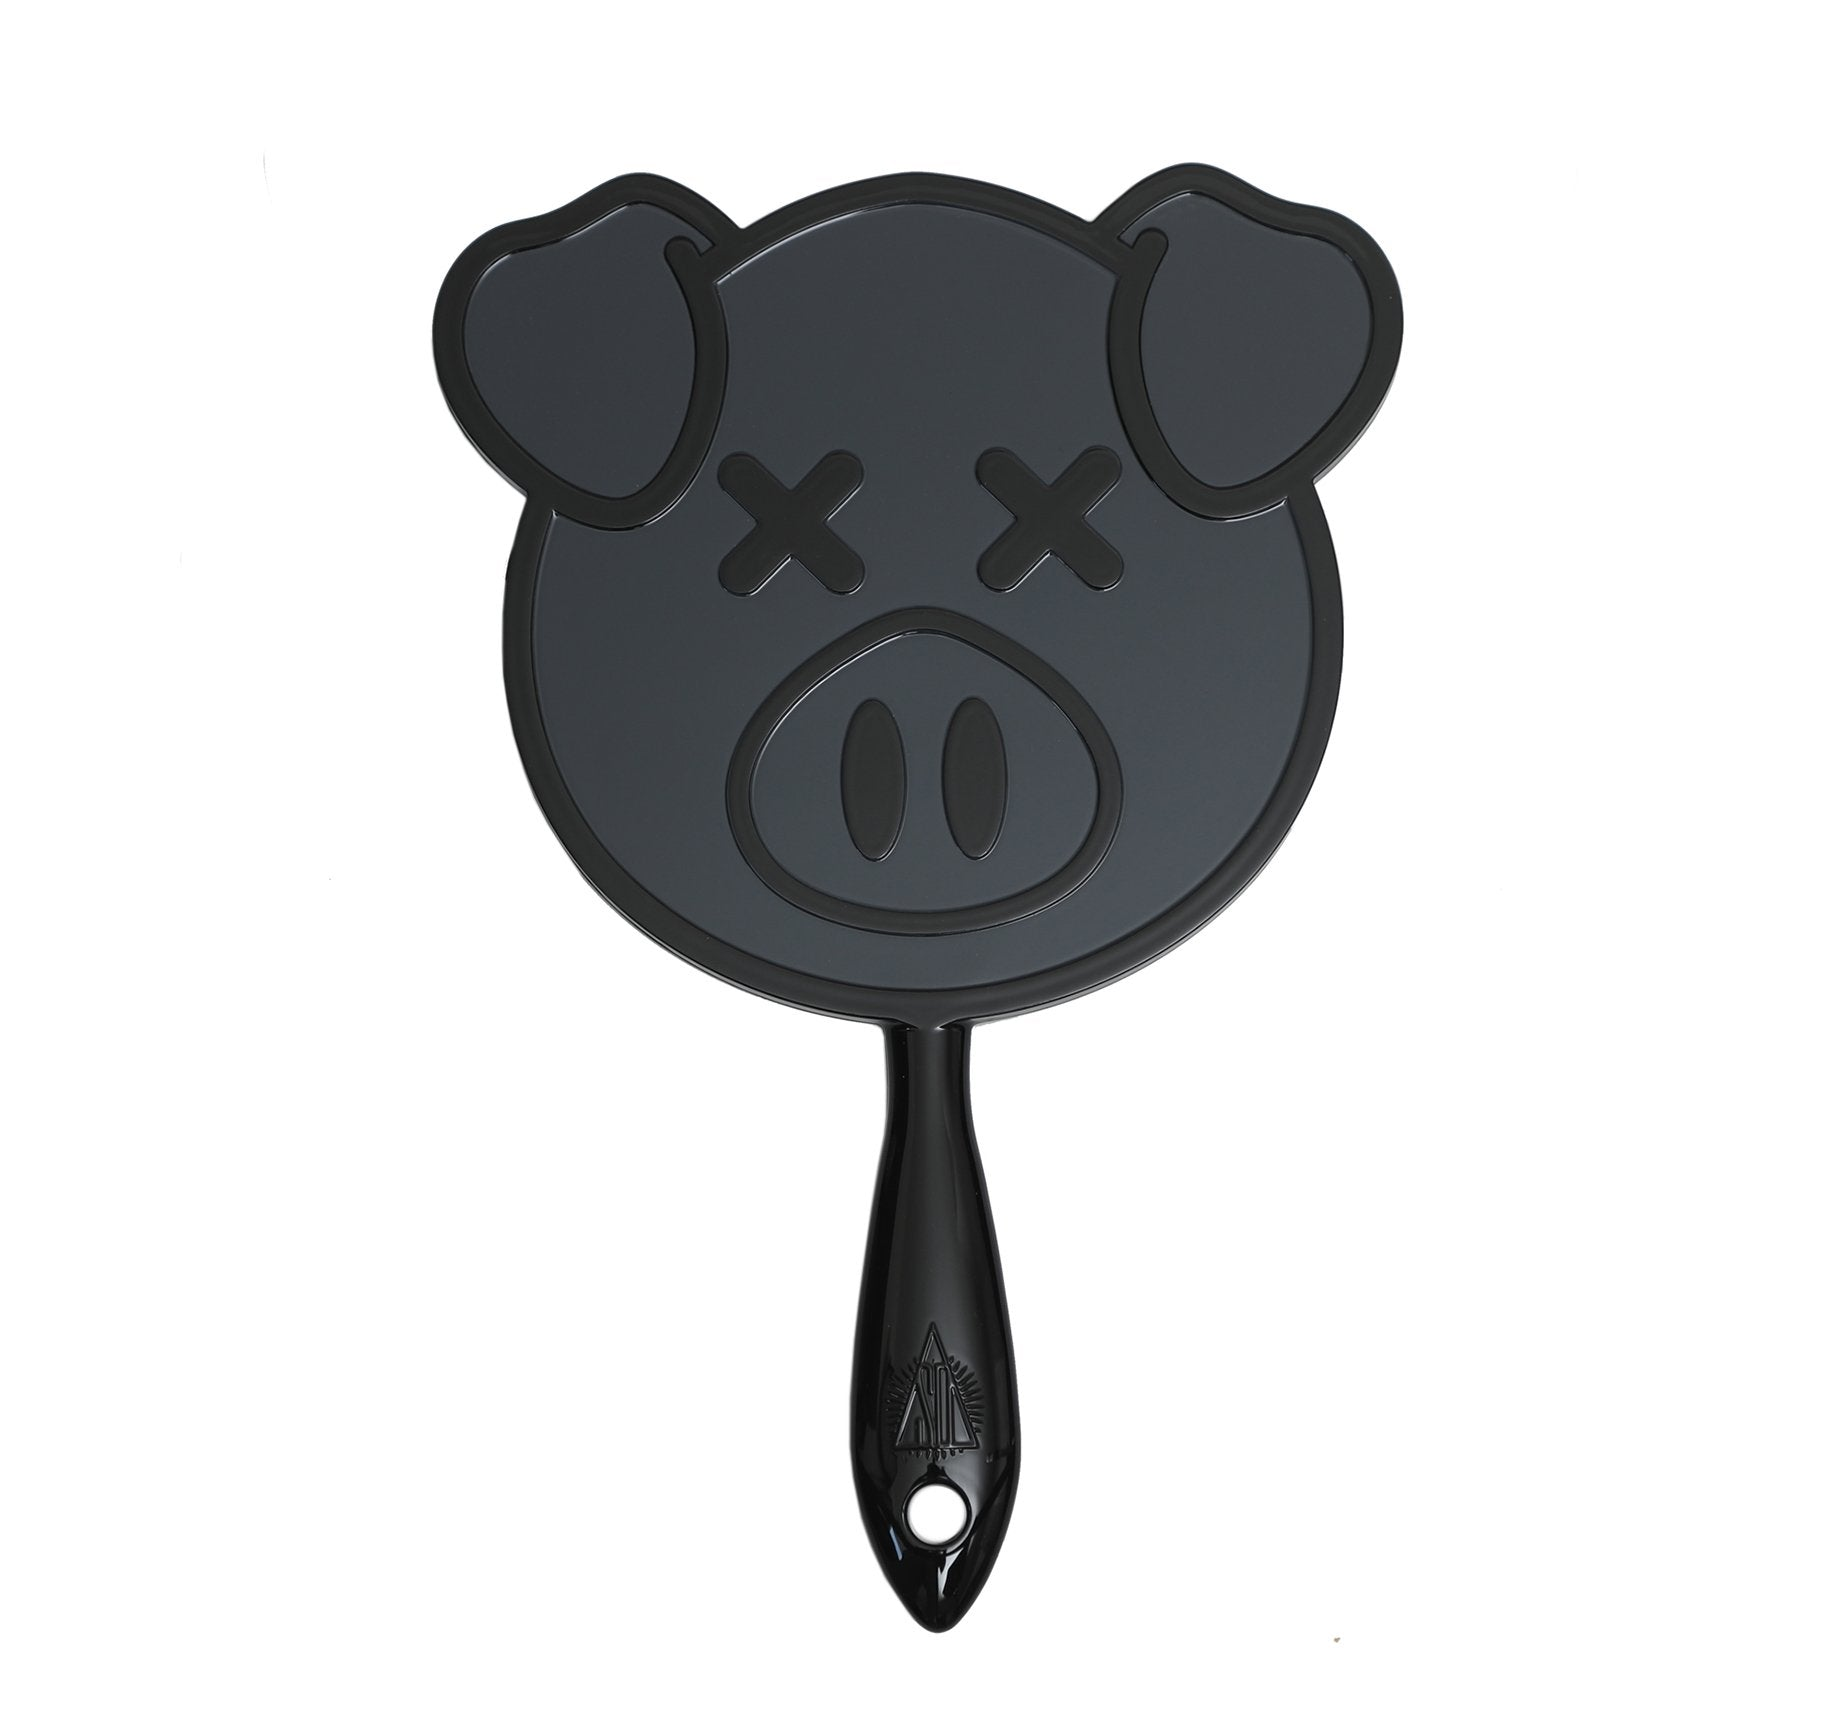 PIG HAND MIRROR - BLACK, view larger image